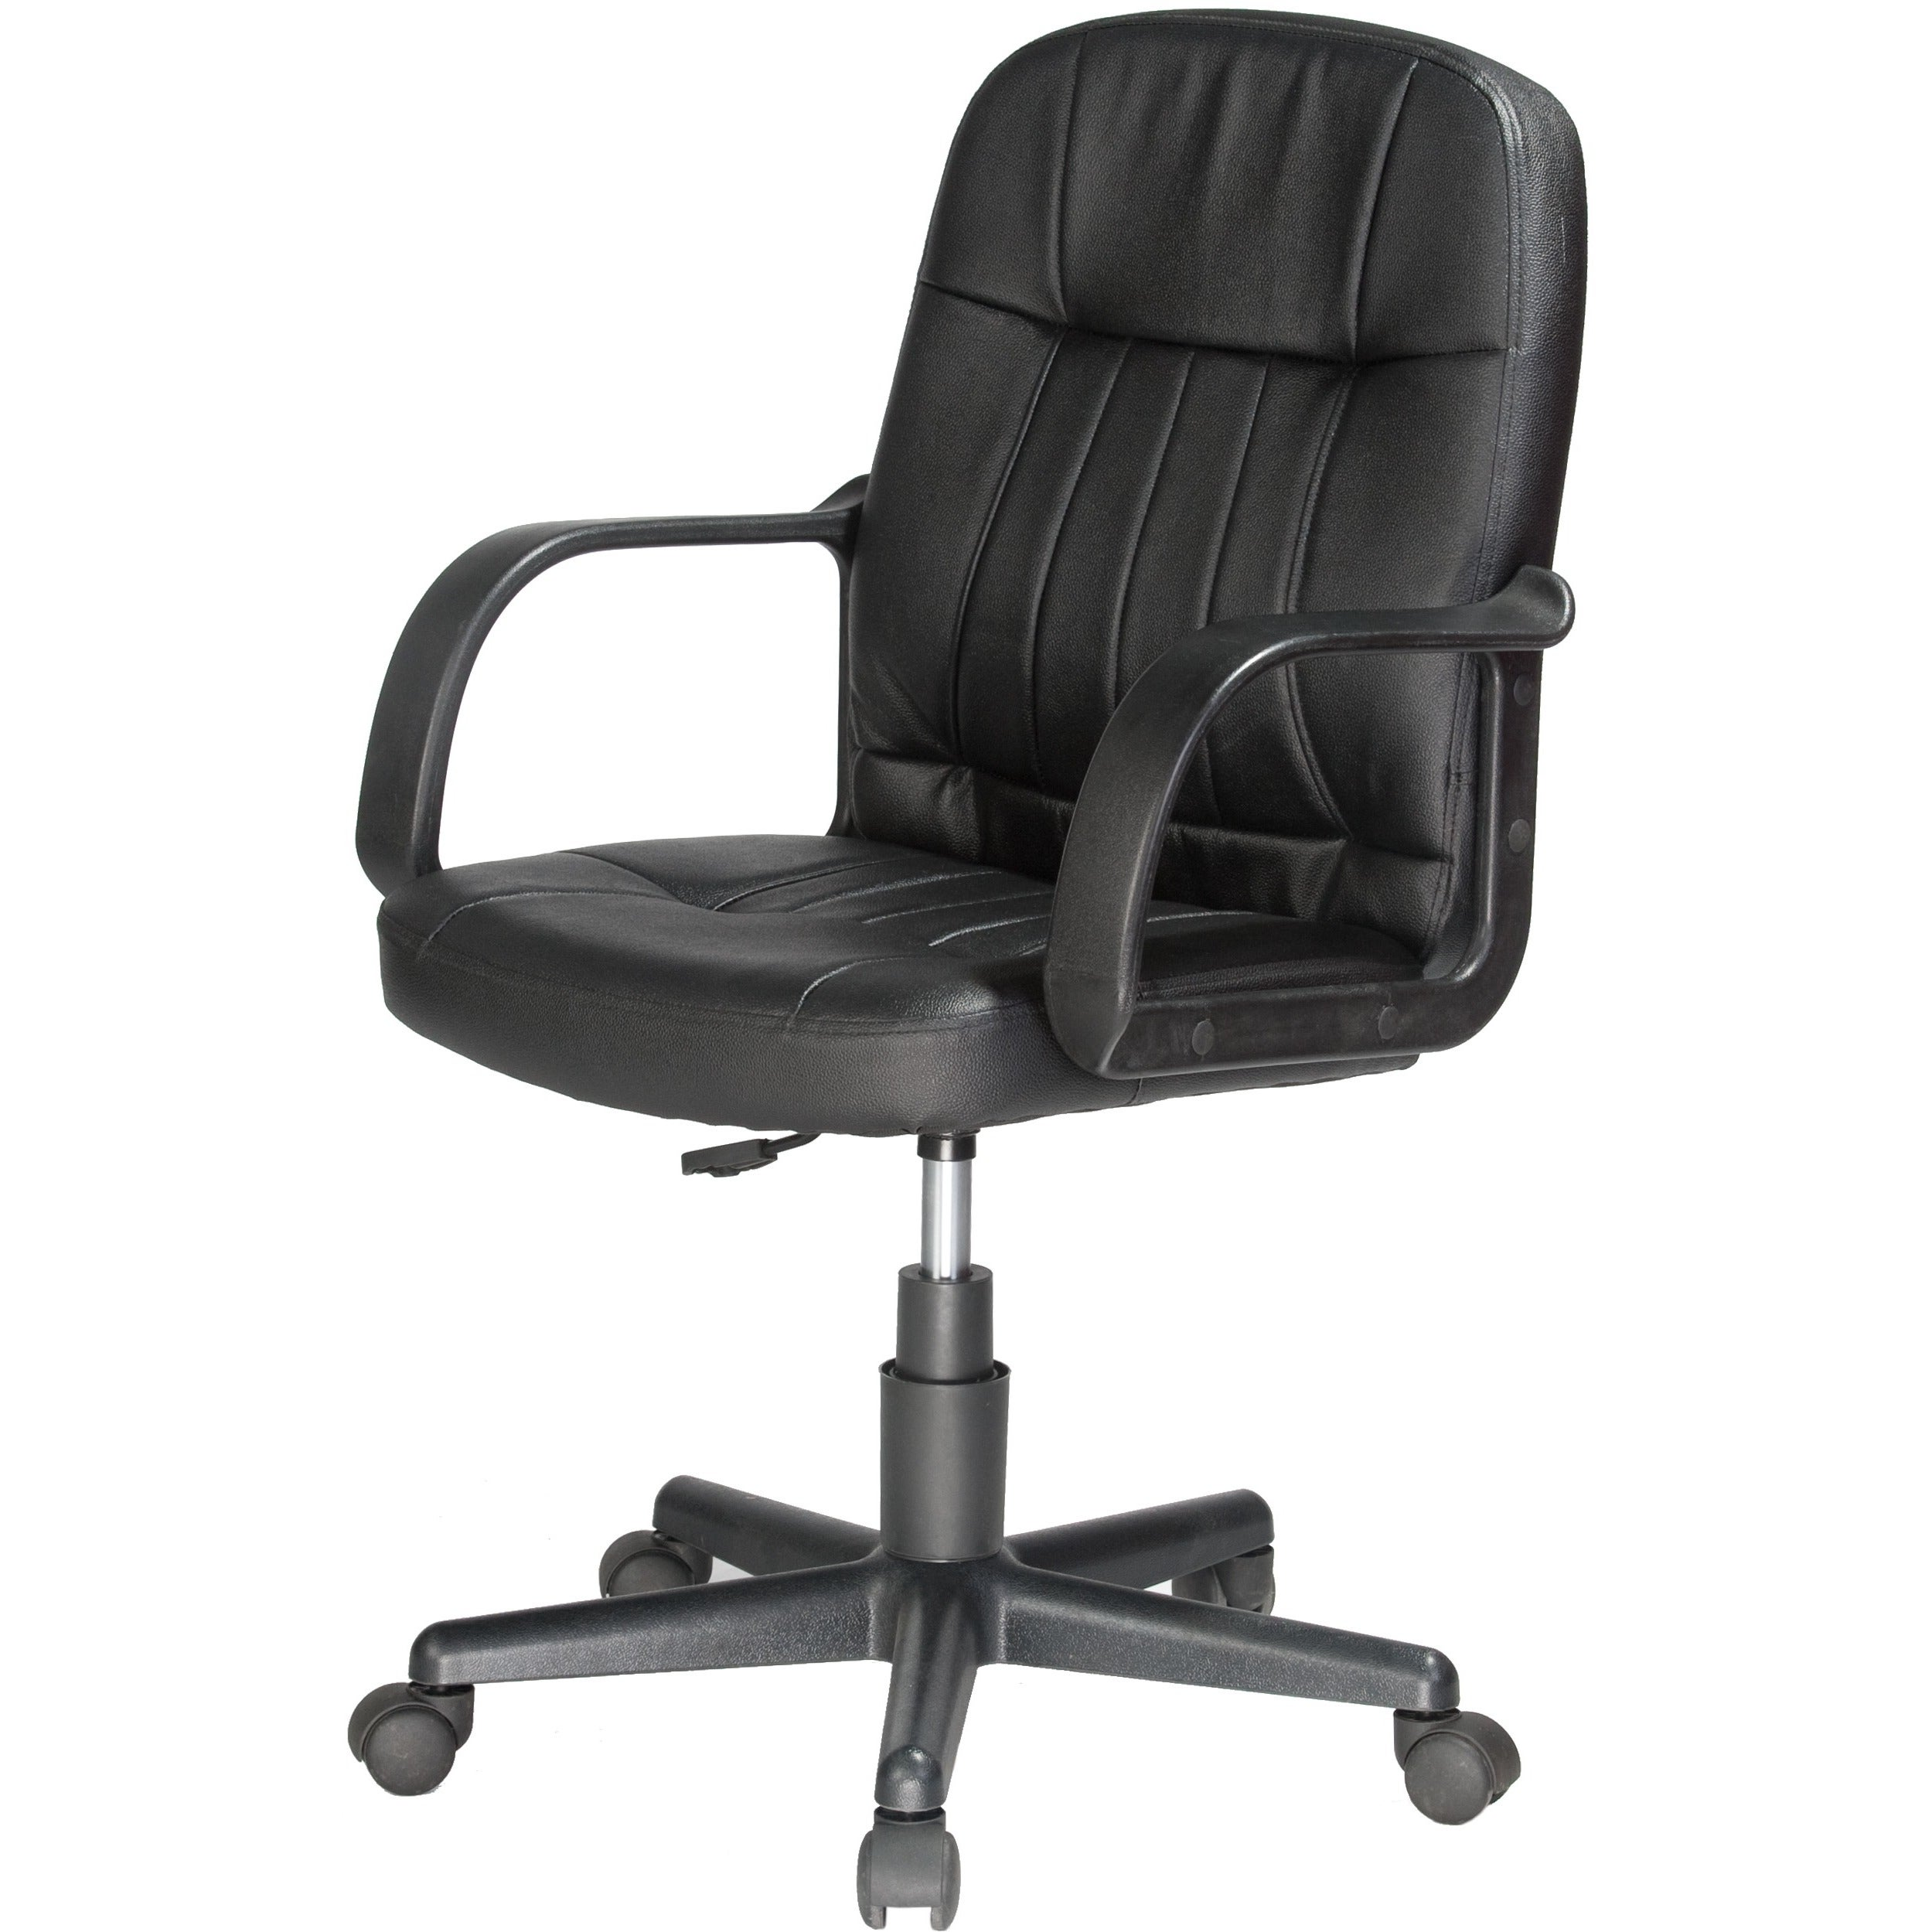 comfort office chair. Comfort Products Black Leather Mid-back Office Chair - Free Shipping Today Overstock 13818873